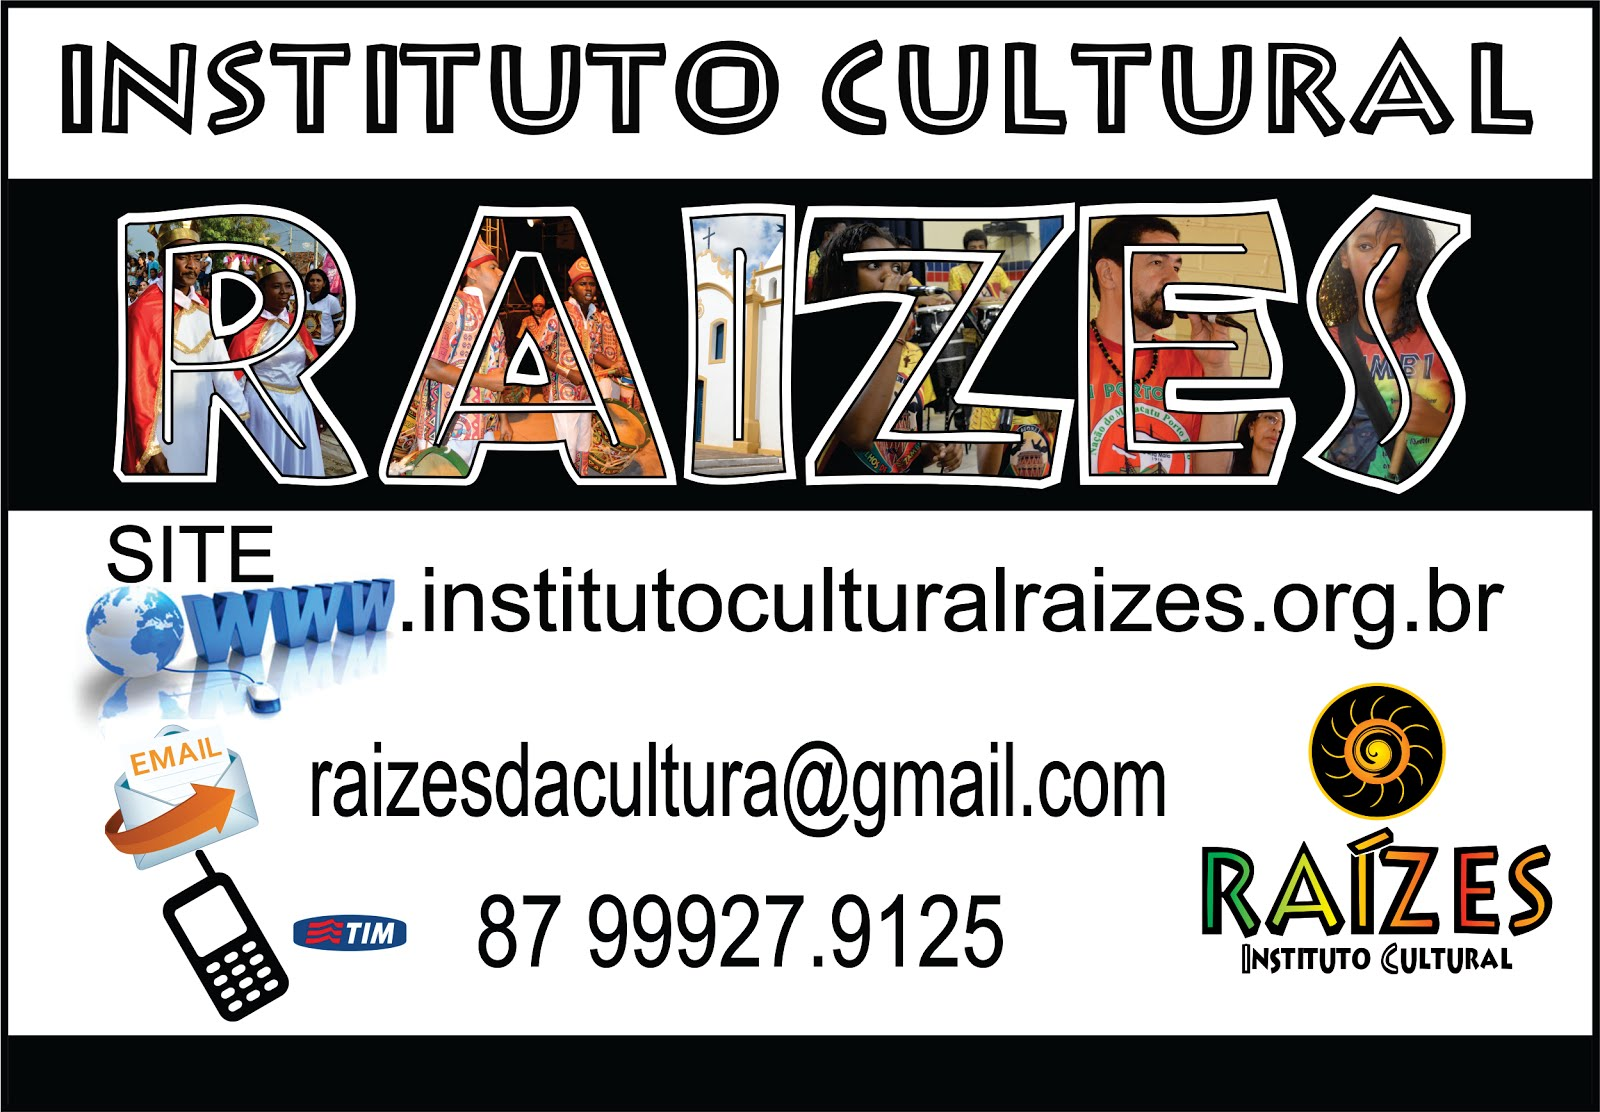 VISITE O SITE DO INSTITUTO CULTURAL RAÍZES